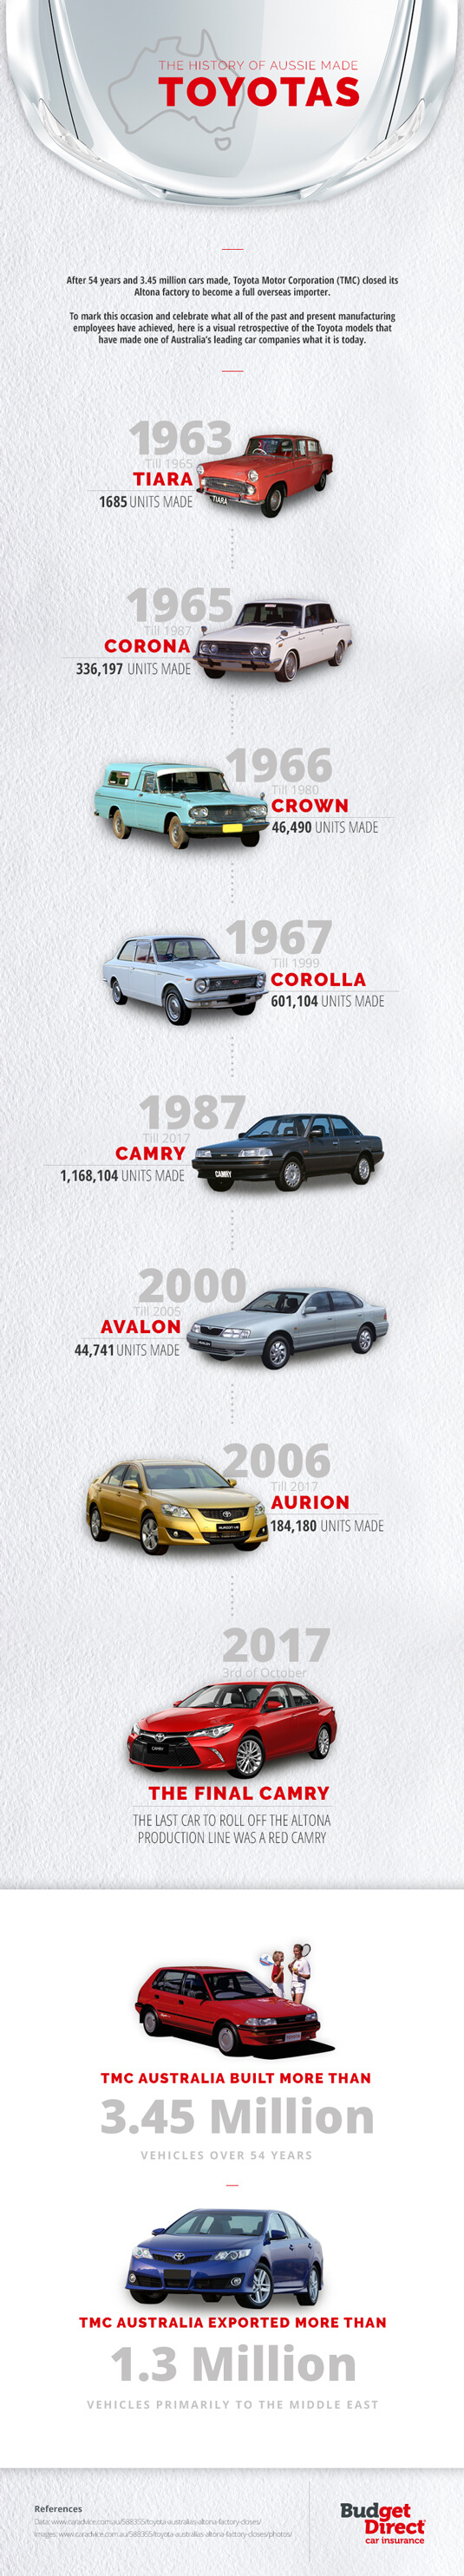 The history of Australian made Toyotas